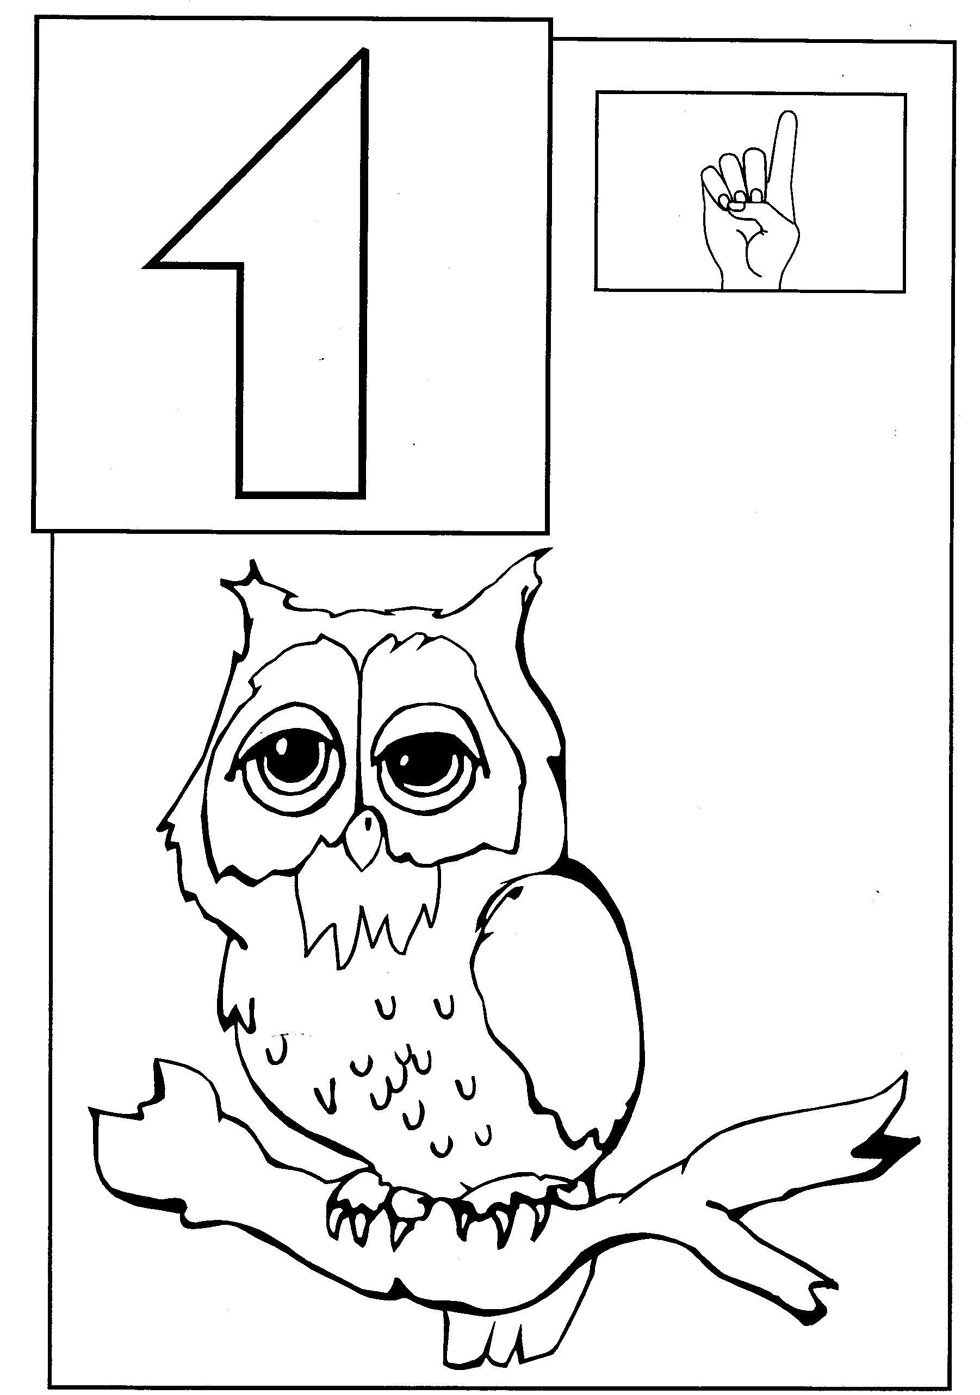 Toddler Coloring Pages Numbers | Coloring Pages